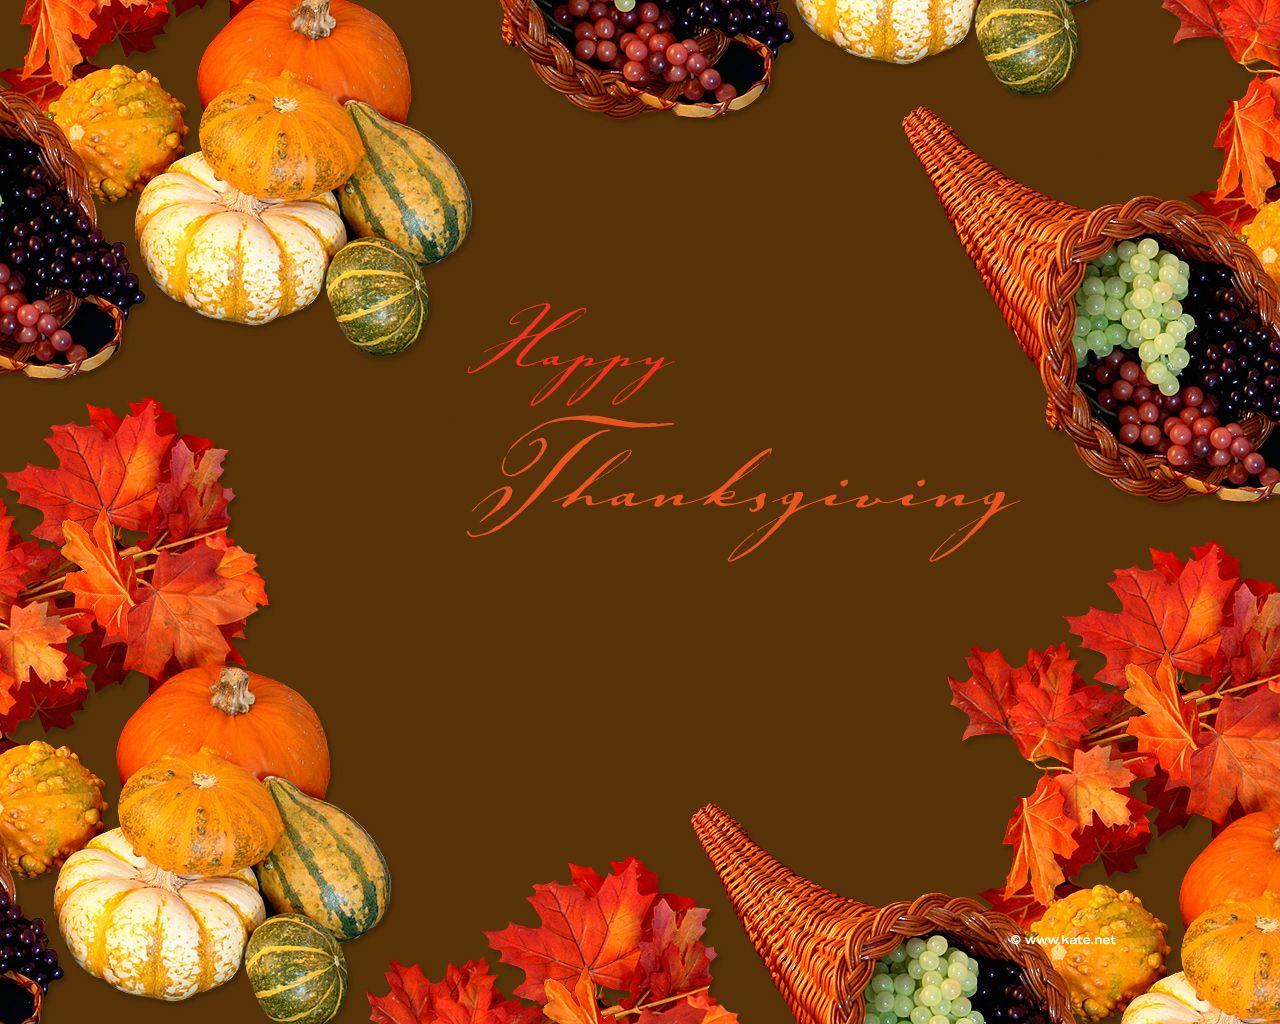 Happy Thanksgiving Day 2017 Quotes Wishes Sayings Image Pics Messages